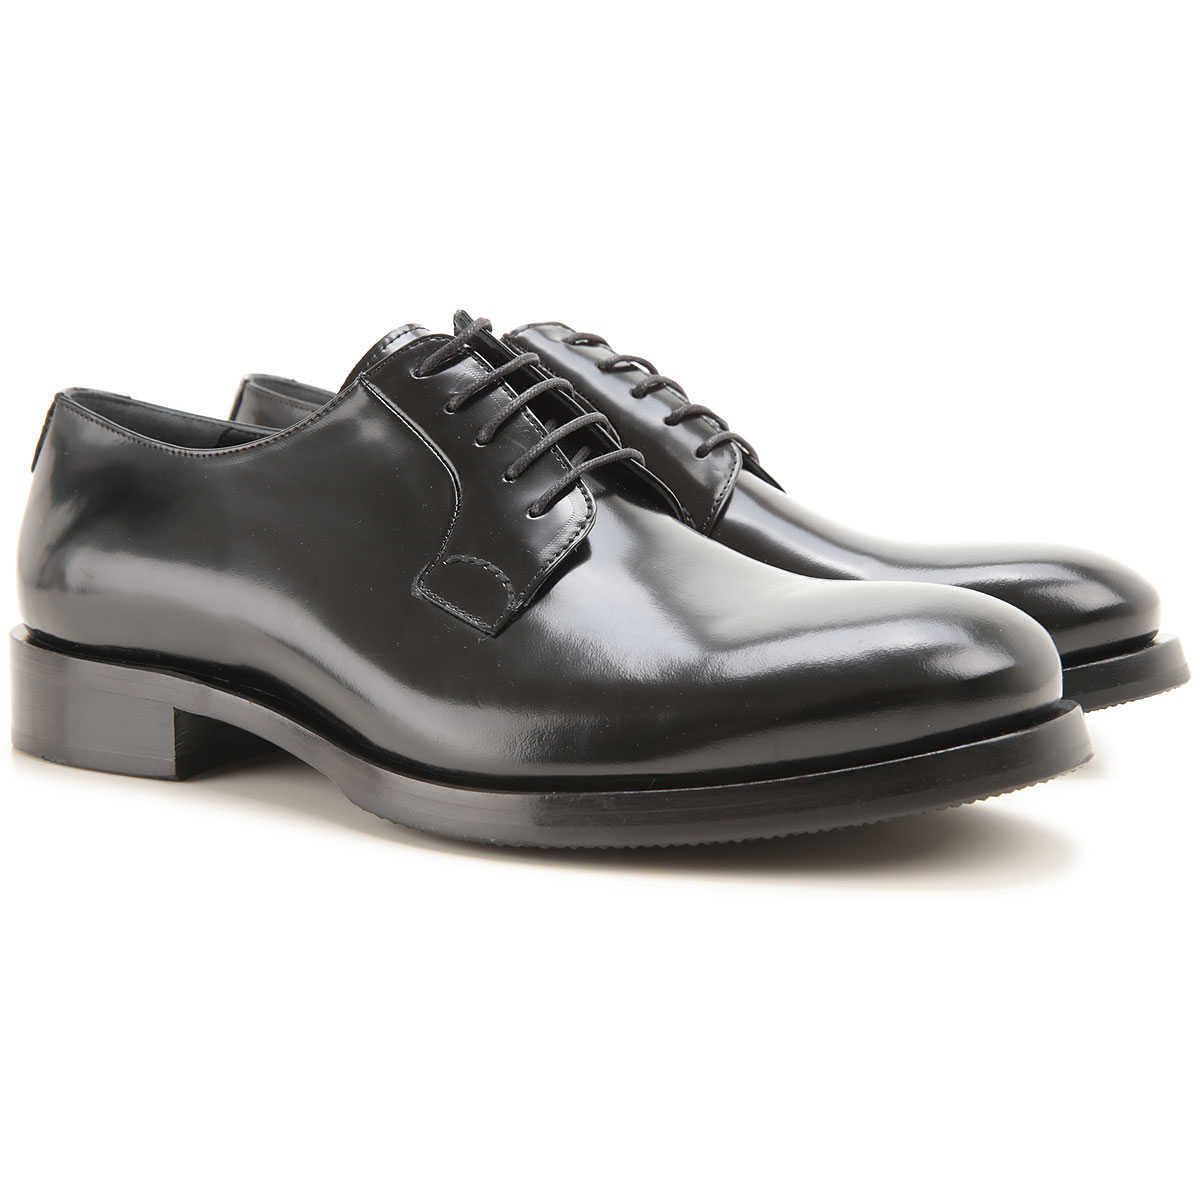 Karl Lagerfeld Lace Up Shoes for Men Oxfords Derbies and Brogues On Sale DK - GOOFASH - Mens FORMAL SHOES